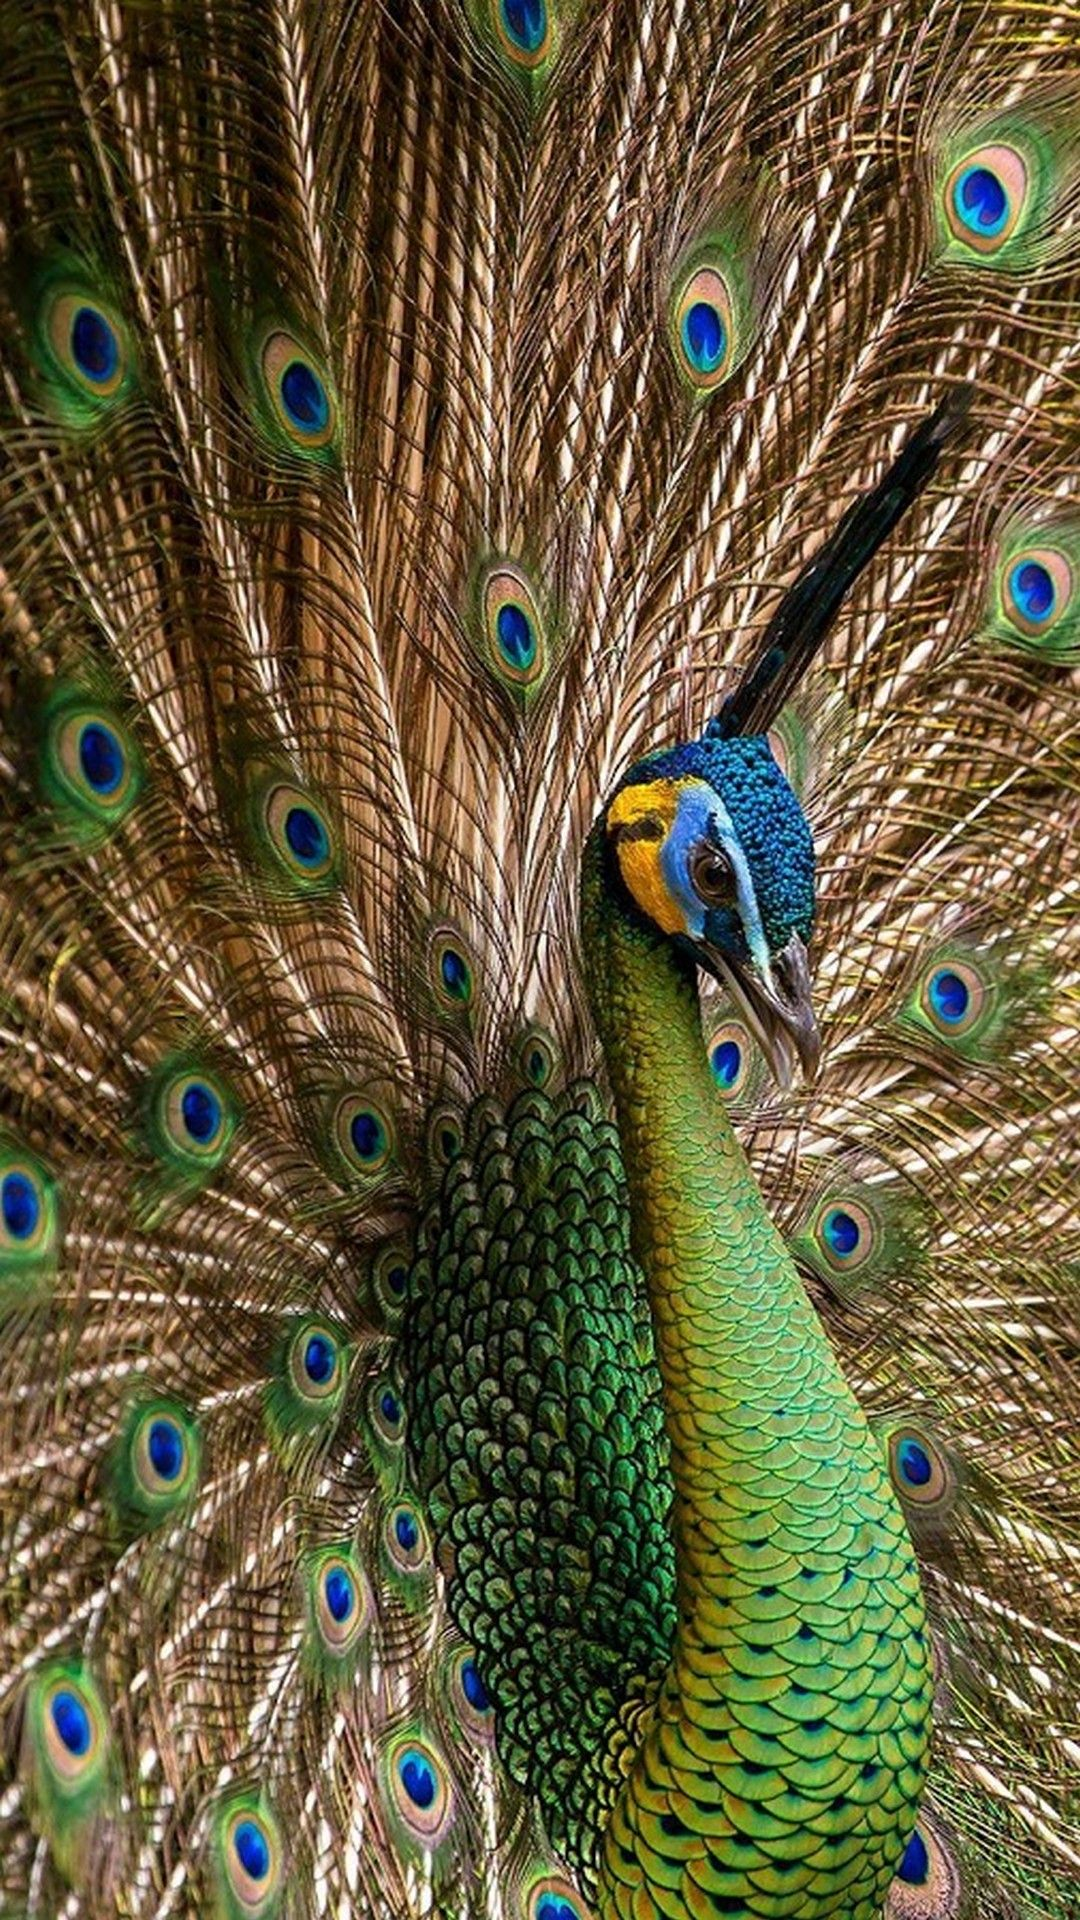 Peacock Wallpaper For Iphone In 2020 Peacock Wallpaper Peacock Images Peacock Pictures